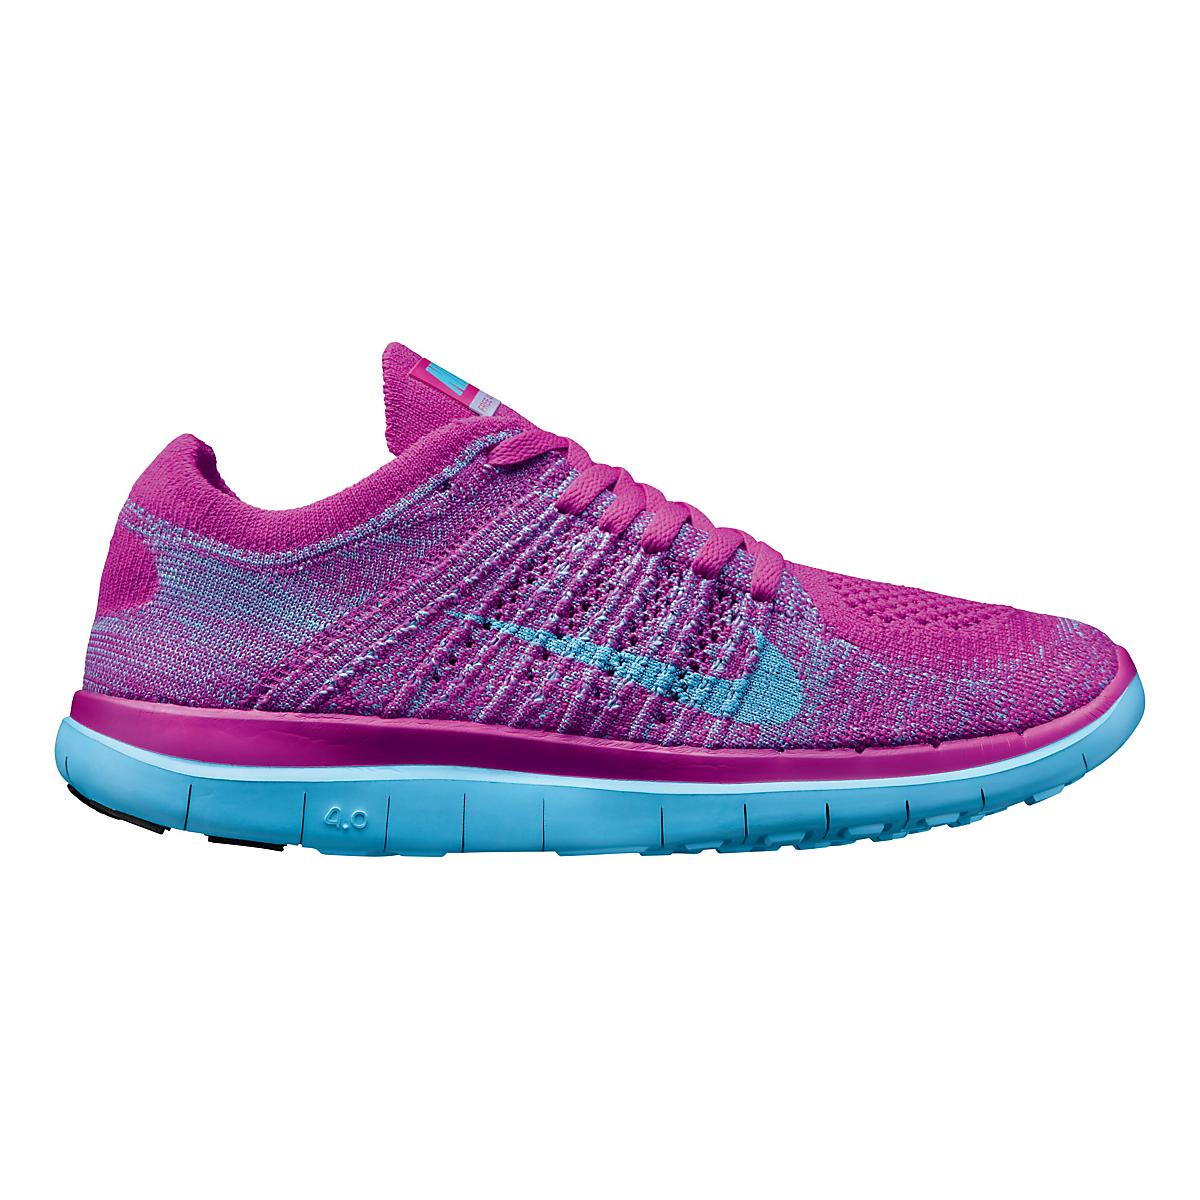 ee192478c39b2 Womens Nike Free 4.0 Flyknit Running Shoe at Road Runner Sports